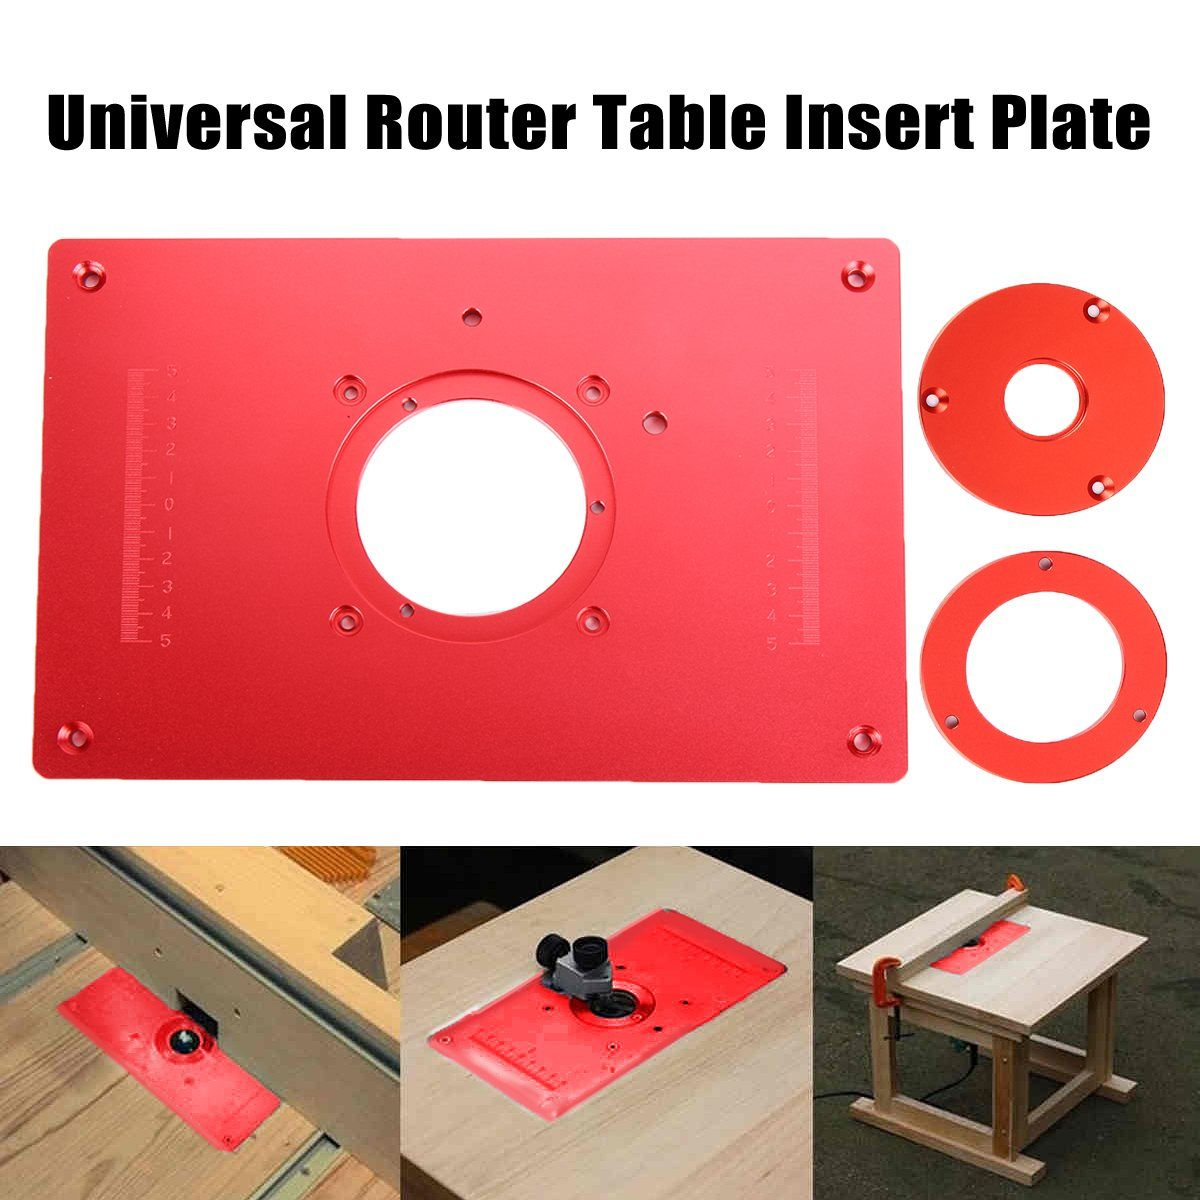 Universal Router Table Insert Plate Aluminium Alloy For DIY Woodworking Engraving Machine 200x300x10mm High Quality